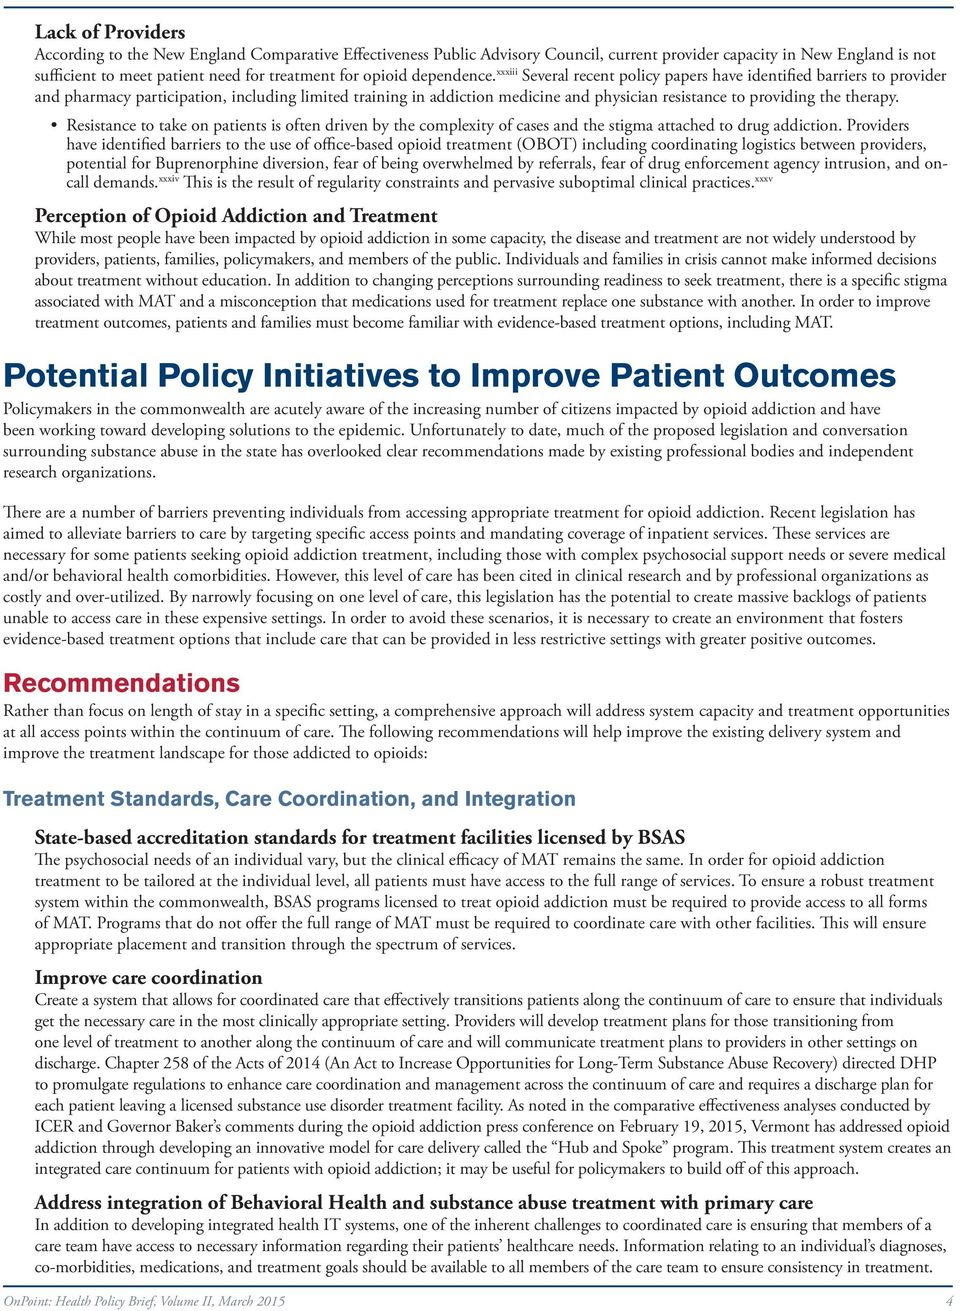 xxxiii Several recent policy papers have identified barriers to provider and pharmacy participation, including limited training in addiction medicine and physician resistance to providing the therapy.